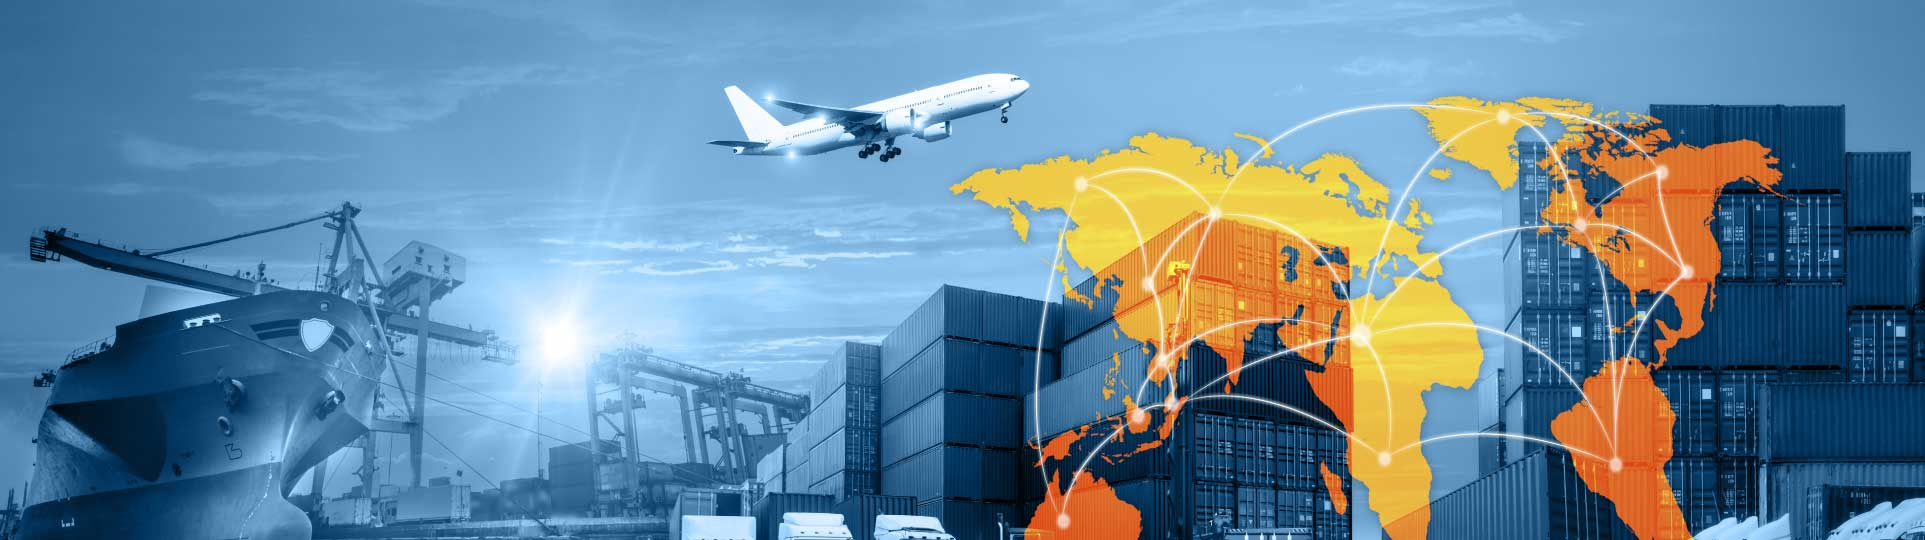 Freight Forwarding Service For All Kinds Of Business,